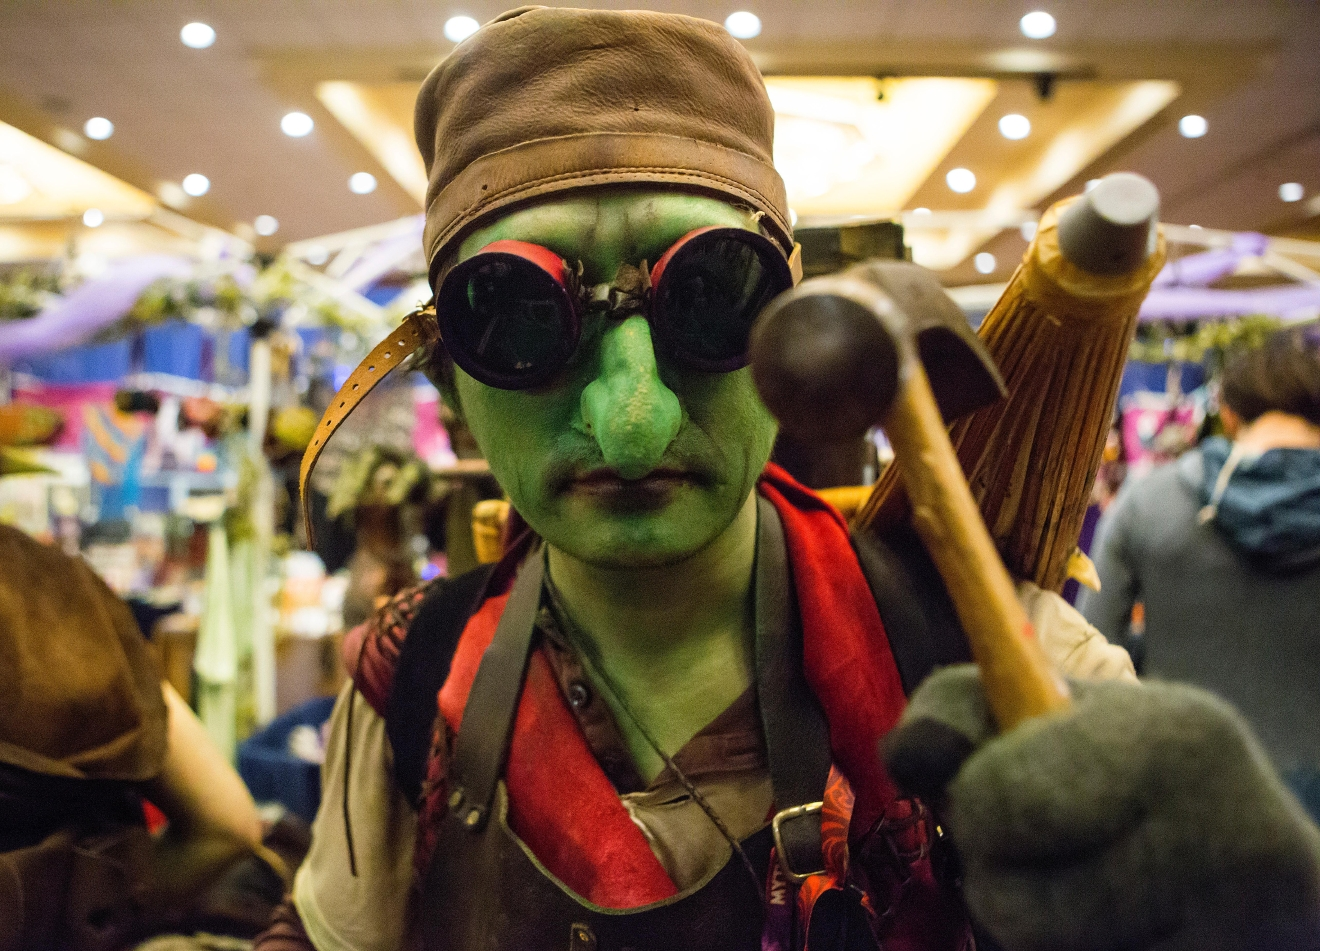 A goblin from Goblin Town inspects the camera at Mythicworlds Convention and Masquerades. (Sy Bean / Seattle Refined)